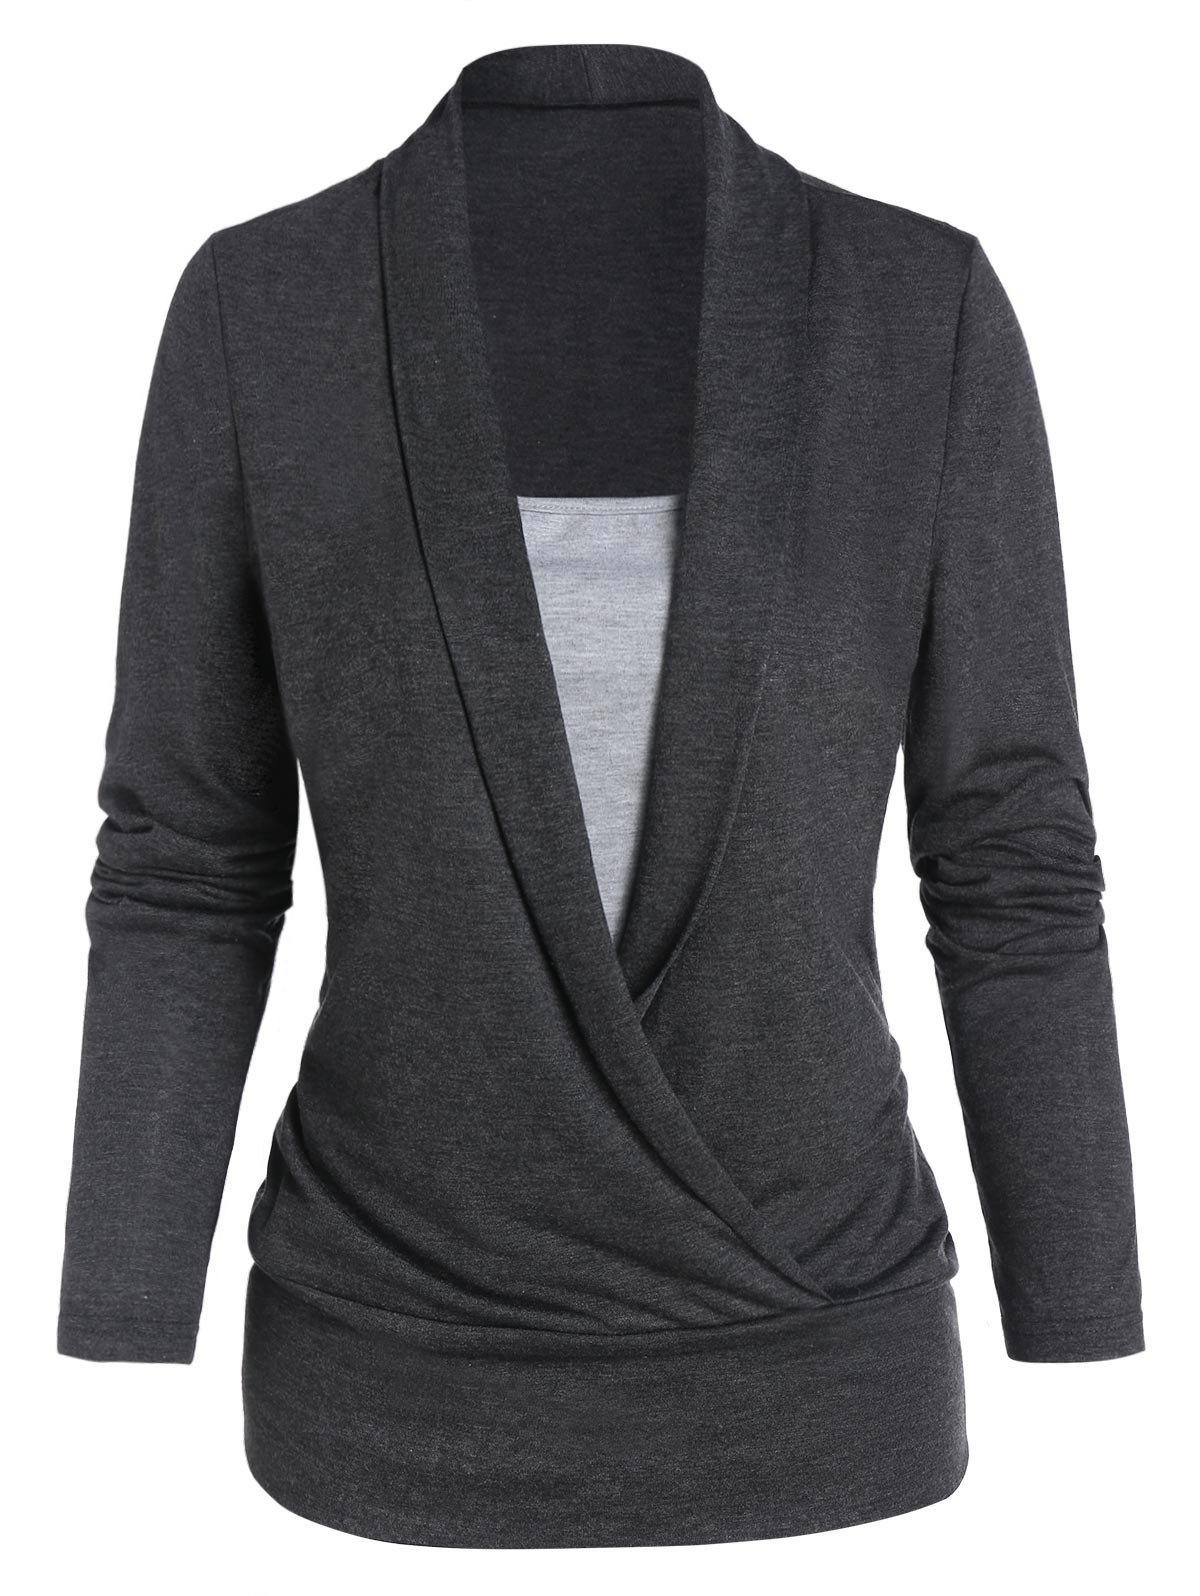 Heathered Long Sleeve Faux Twinset T-shirt - CARBON GRAY L